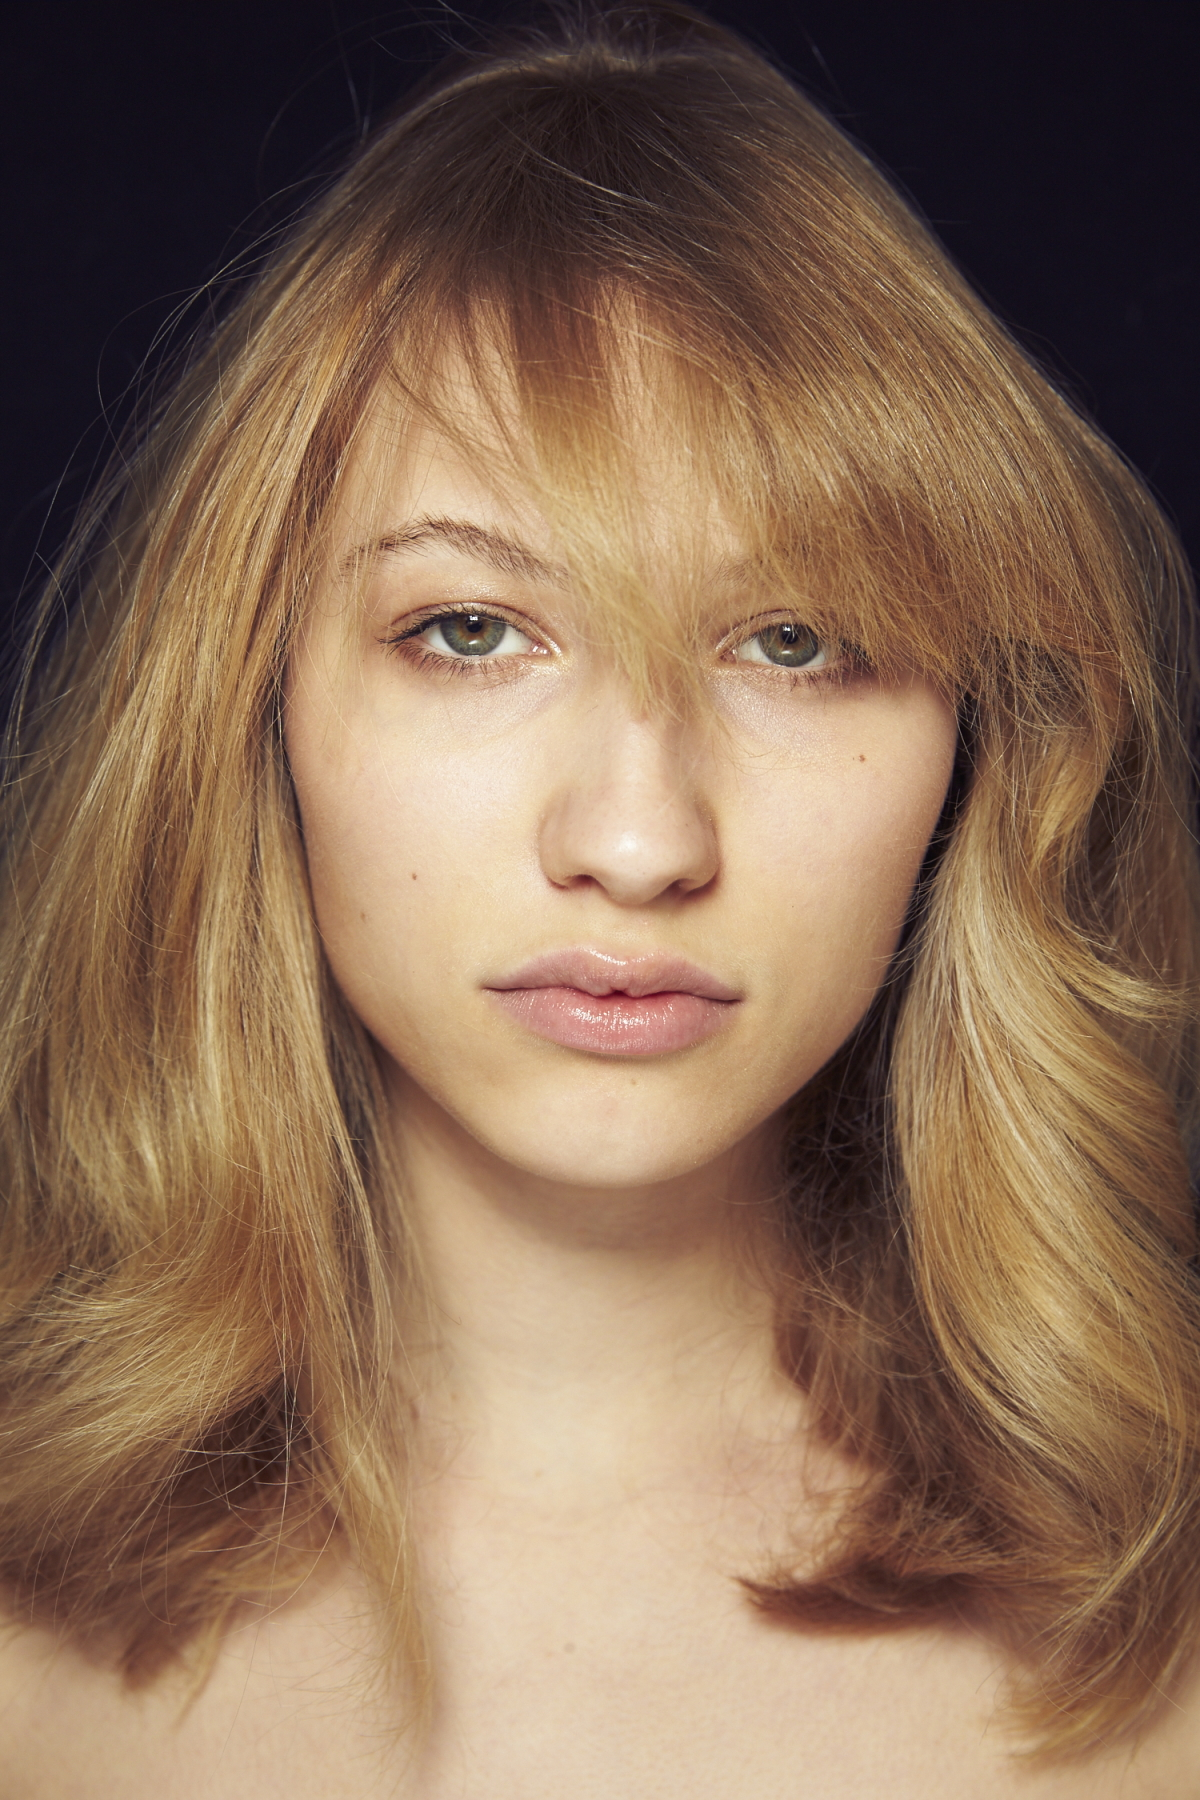 Fiona from Chadwick Model Management